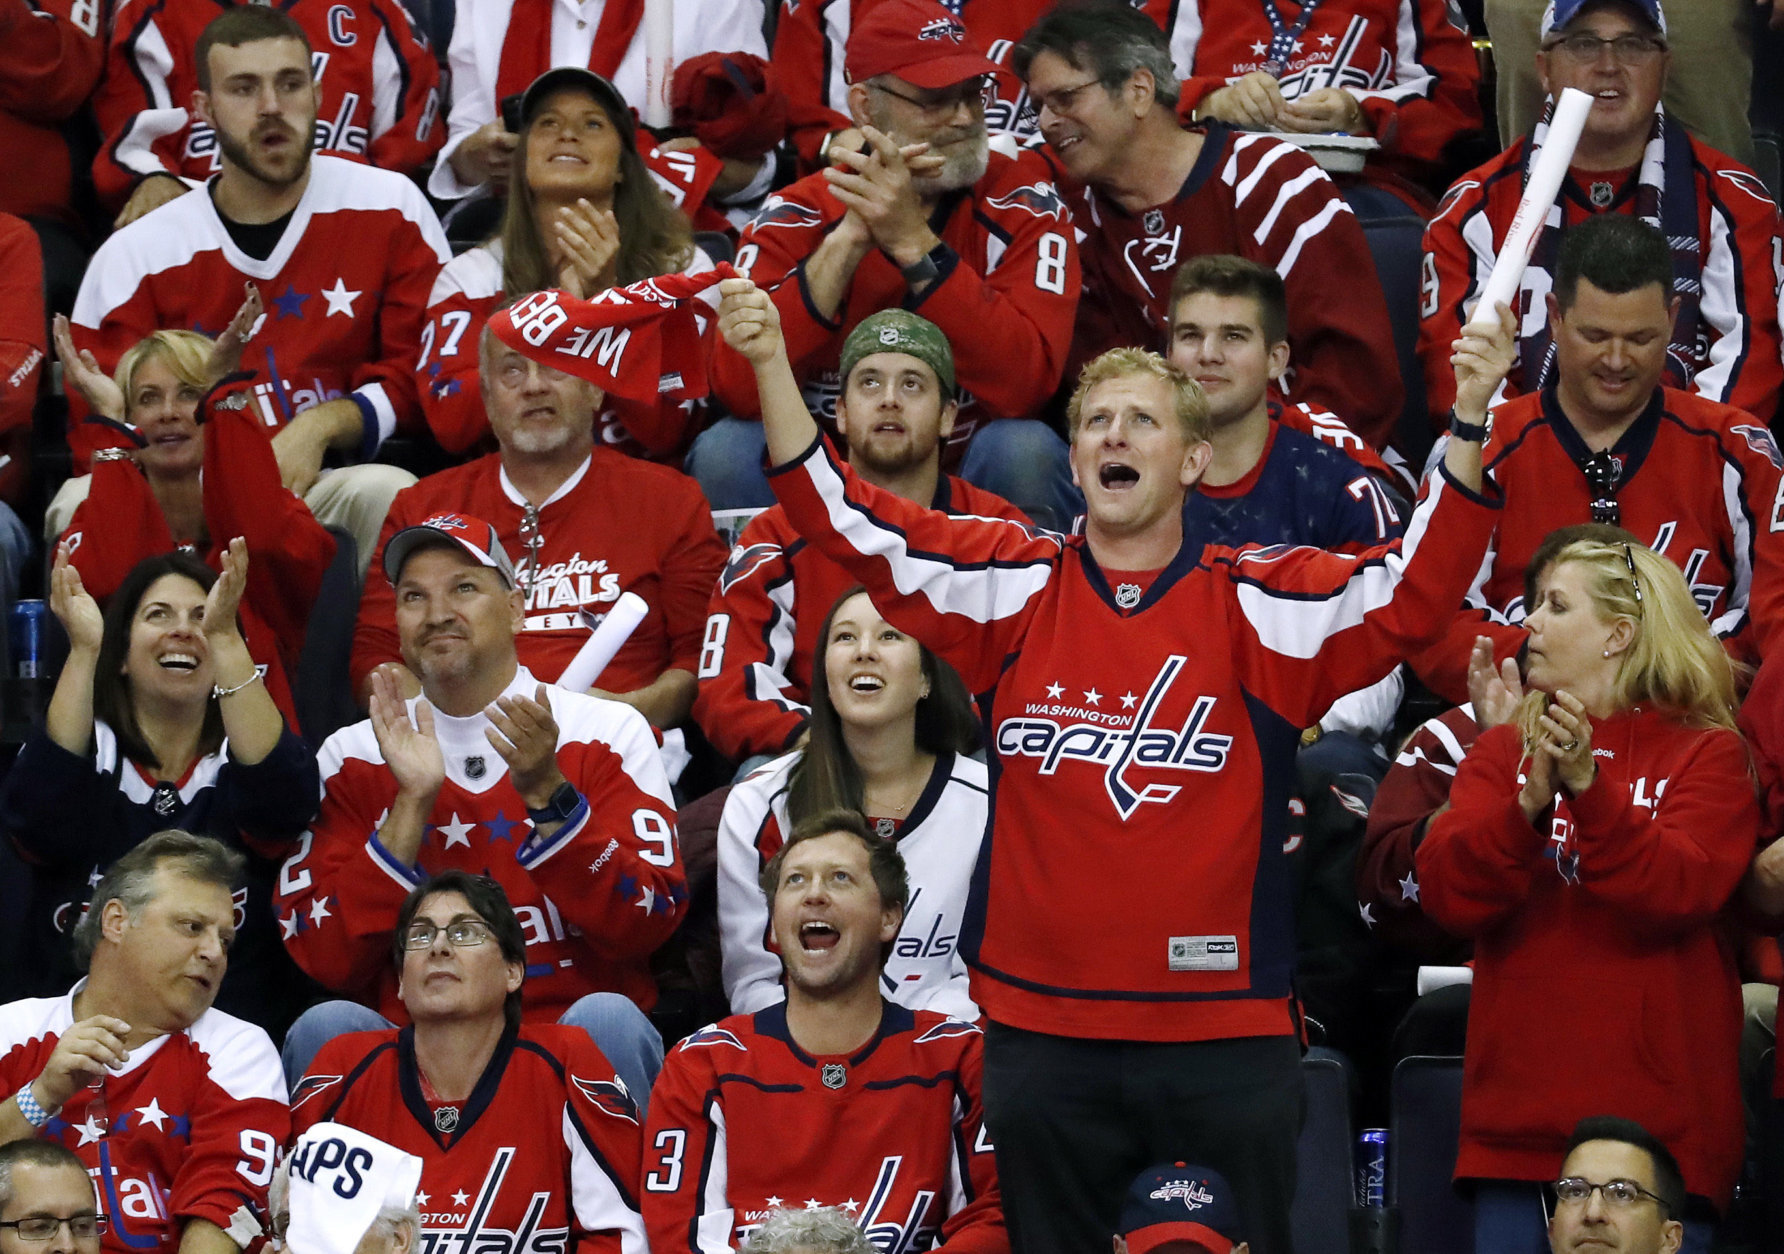 Washington Capitals fans cheer during the second period in Game 4 of the NHL hockey Stanley Cup Final between the Capitals and the Vegas Golden Knights, Monday, June 4, 2018, in Washington. (AP Photo/Pablo Martinez Monsivais)